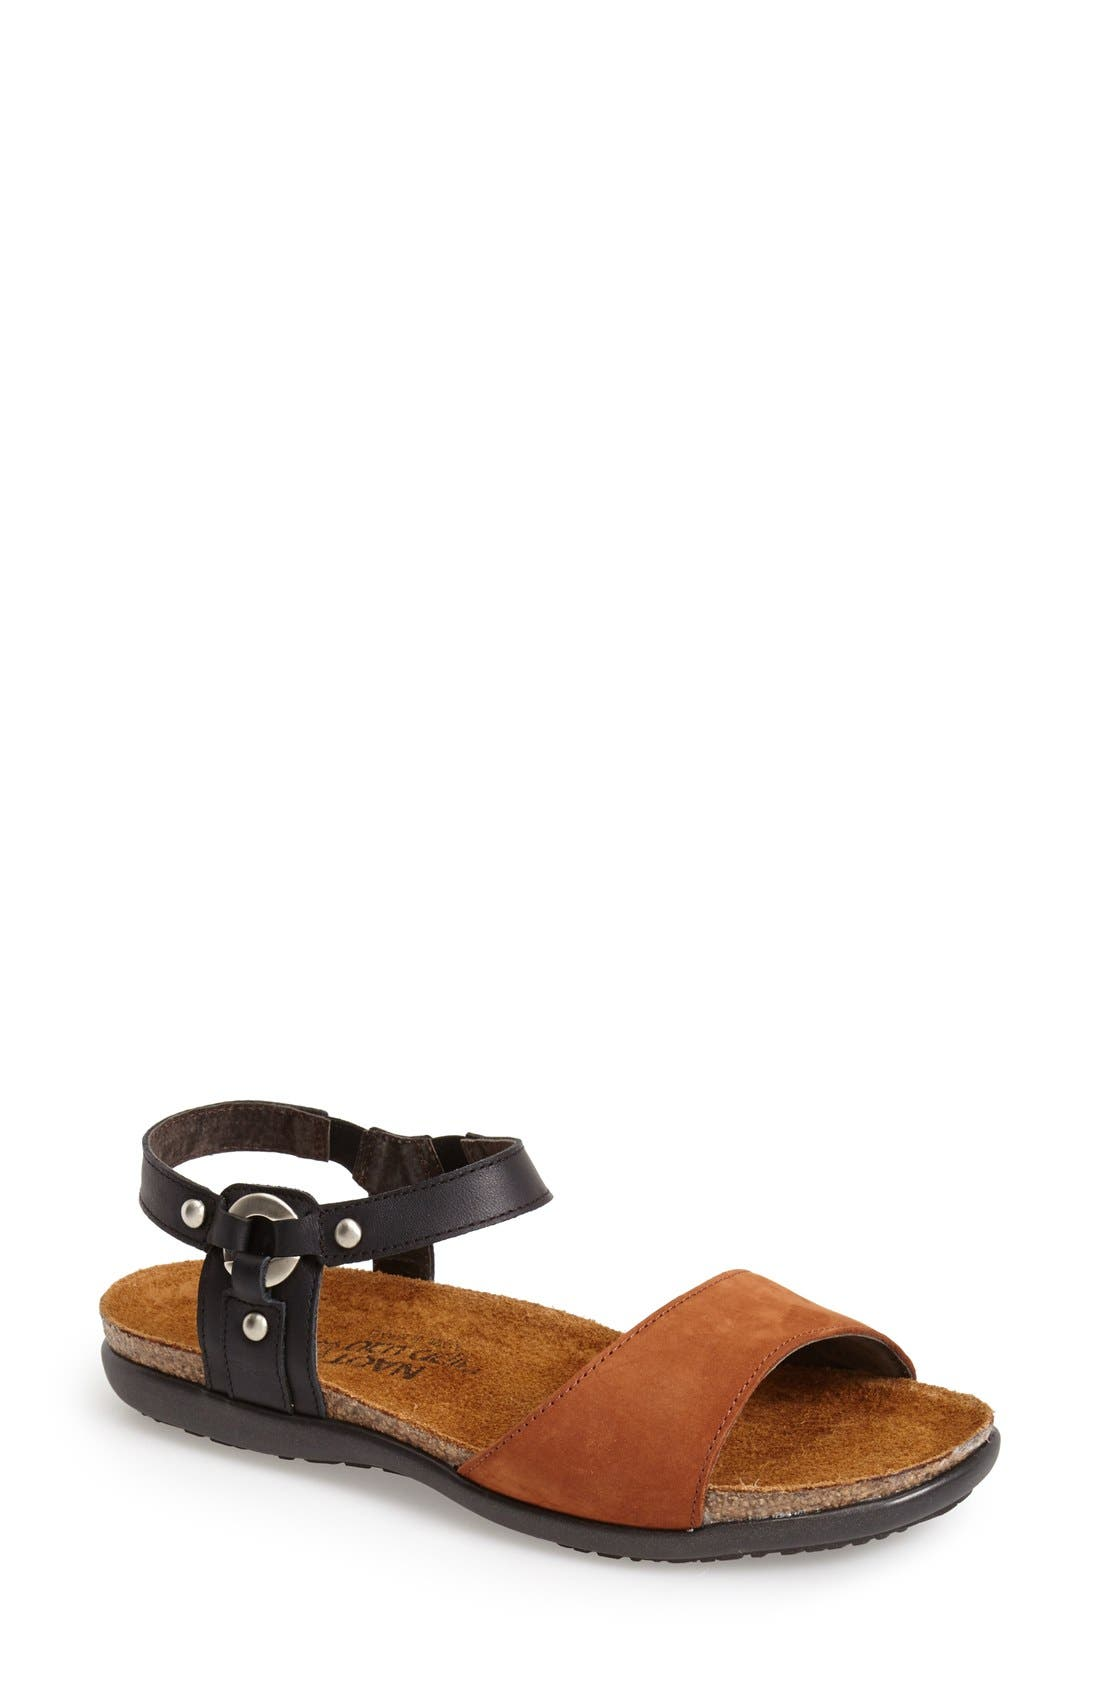 'Sabrina' Sandal,                         Main,                         color, BLACK/ BROWN